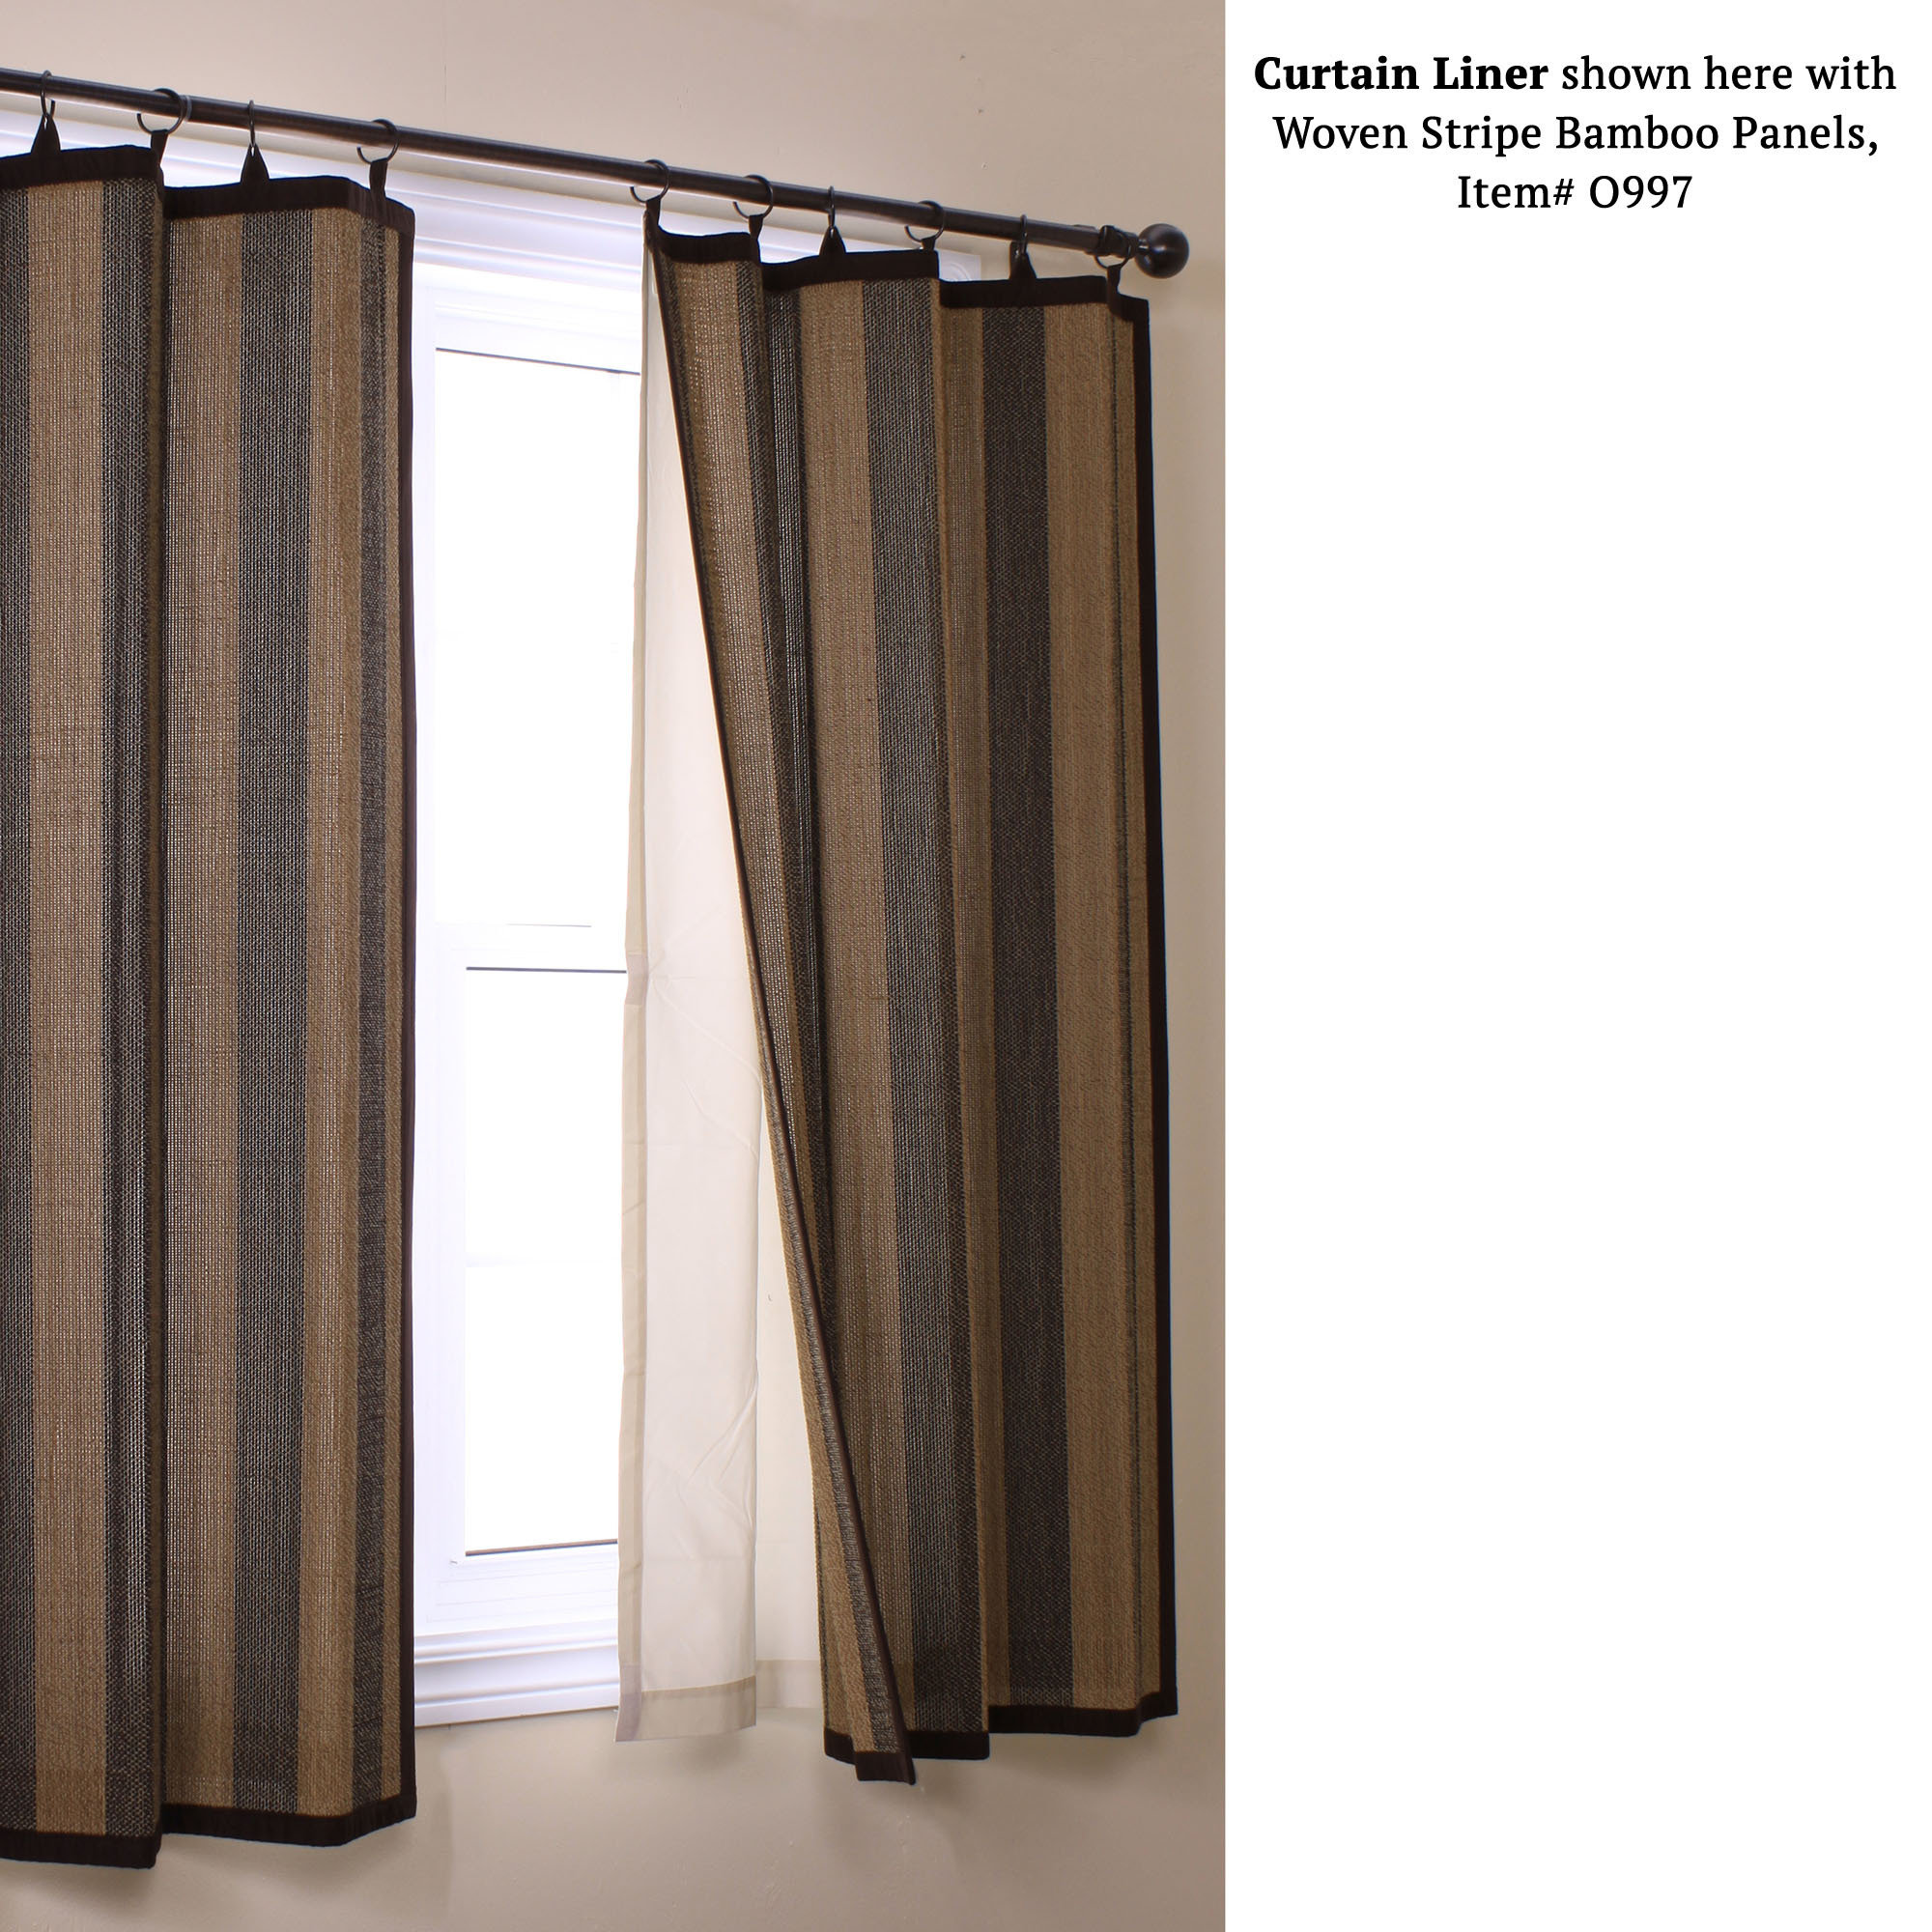 Cheap Blackout Curtains for Inspiring Home Decorating Ideas: Blackout Drapes | Cheap Blackout Curtains | Blackout Curtins